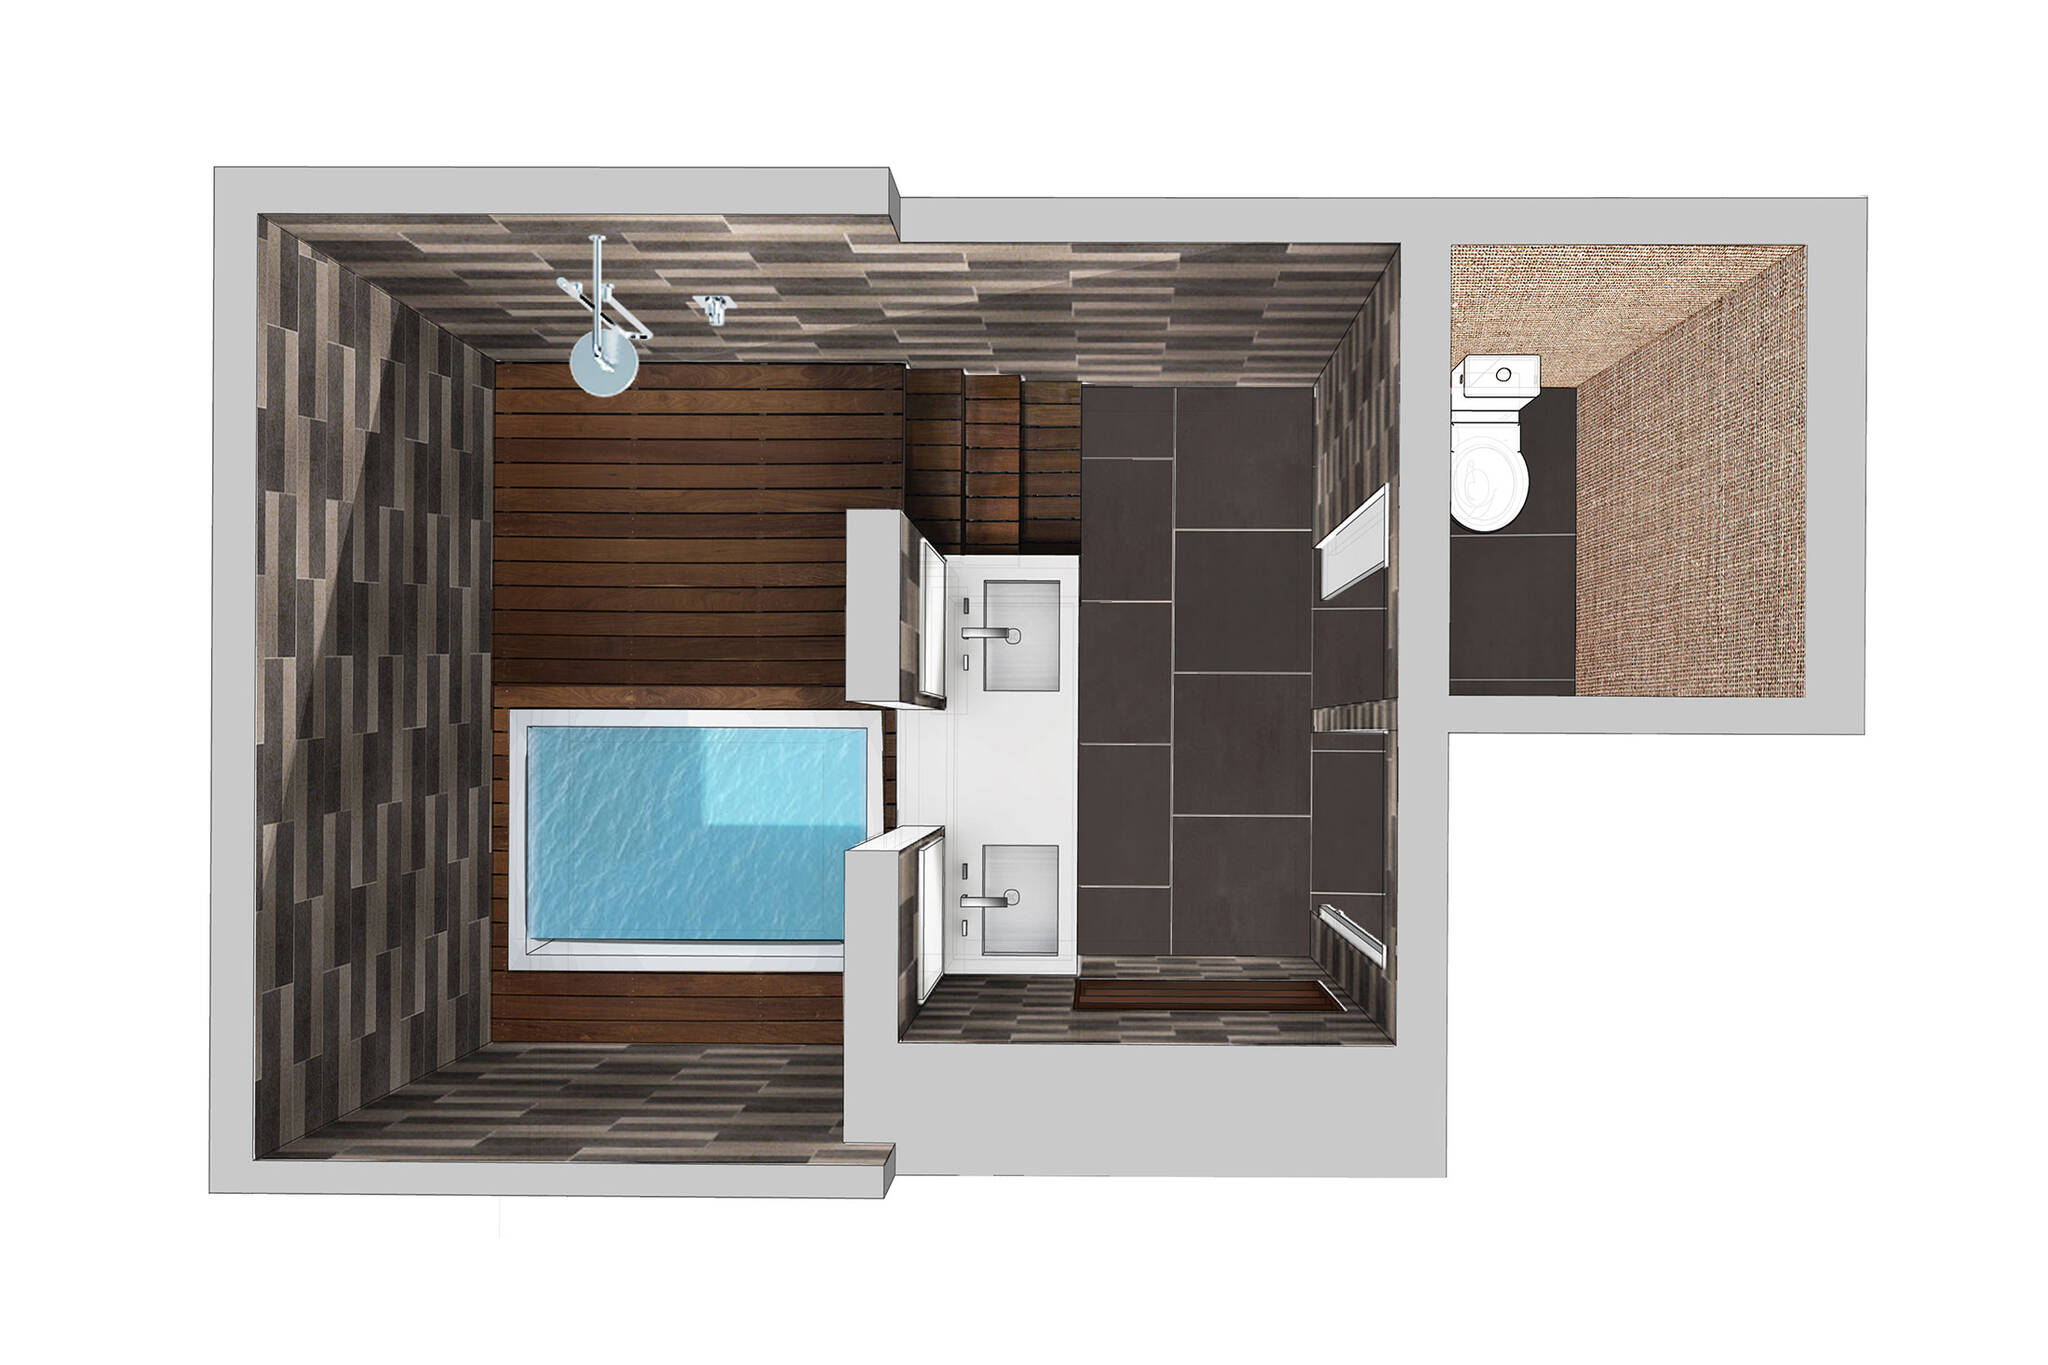 3D top view of the master bathroom of the loft renovation project in Union Square, New York City designed by the architecture studio Danny Forster & Architecture